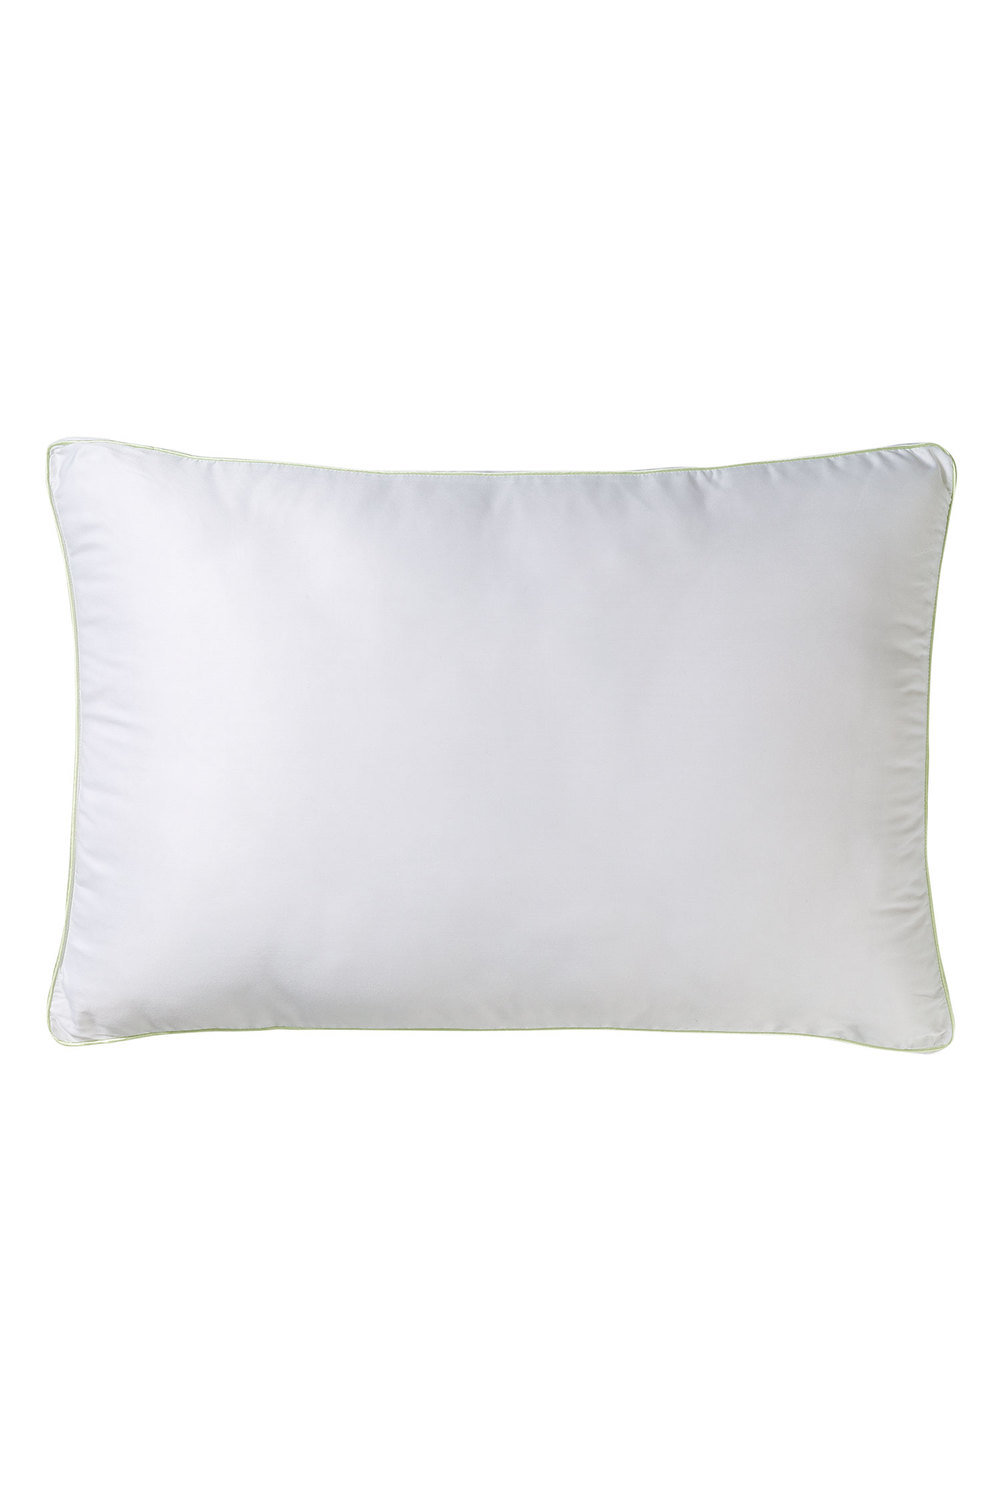 original removable case pillow foam the zippered with itm bamboo memory